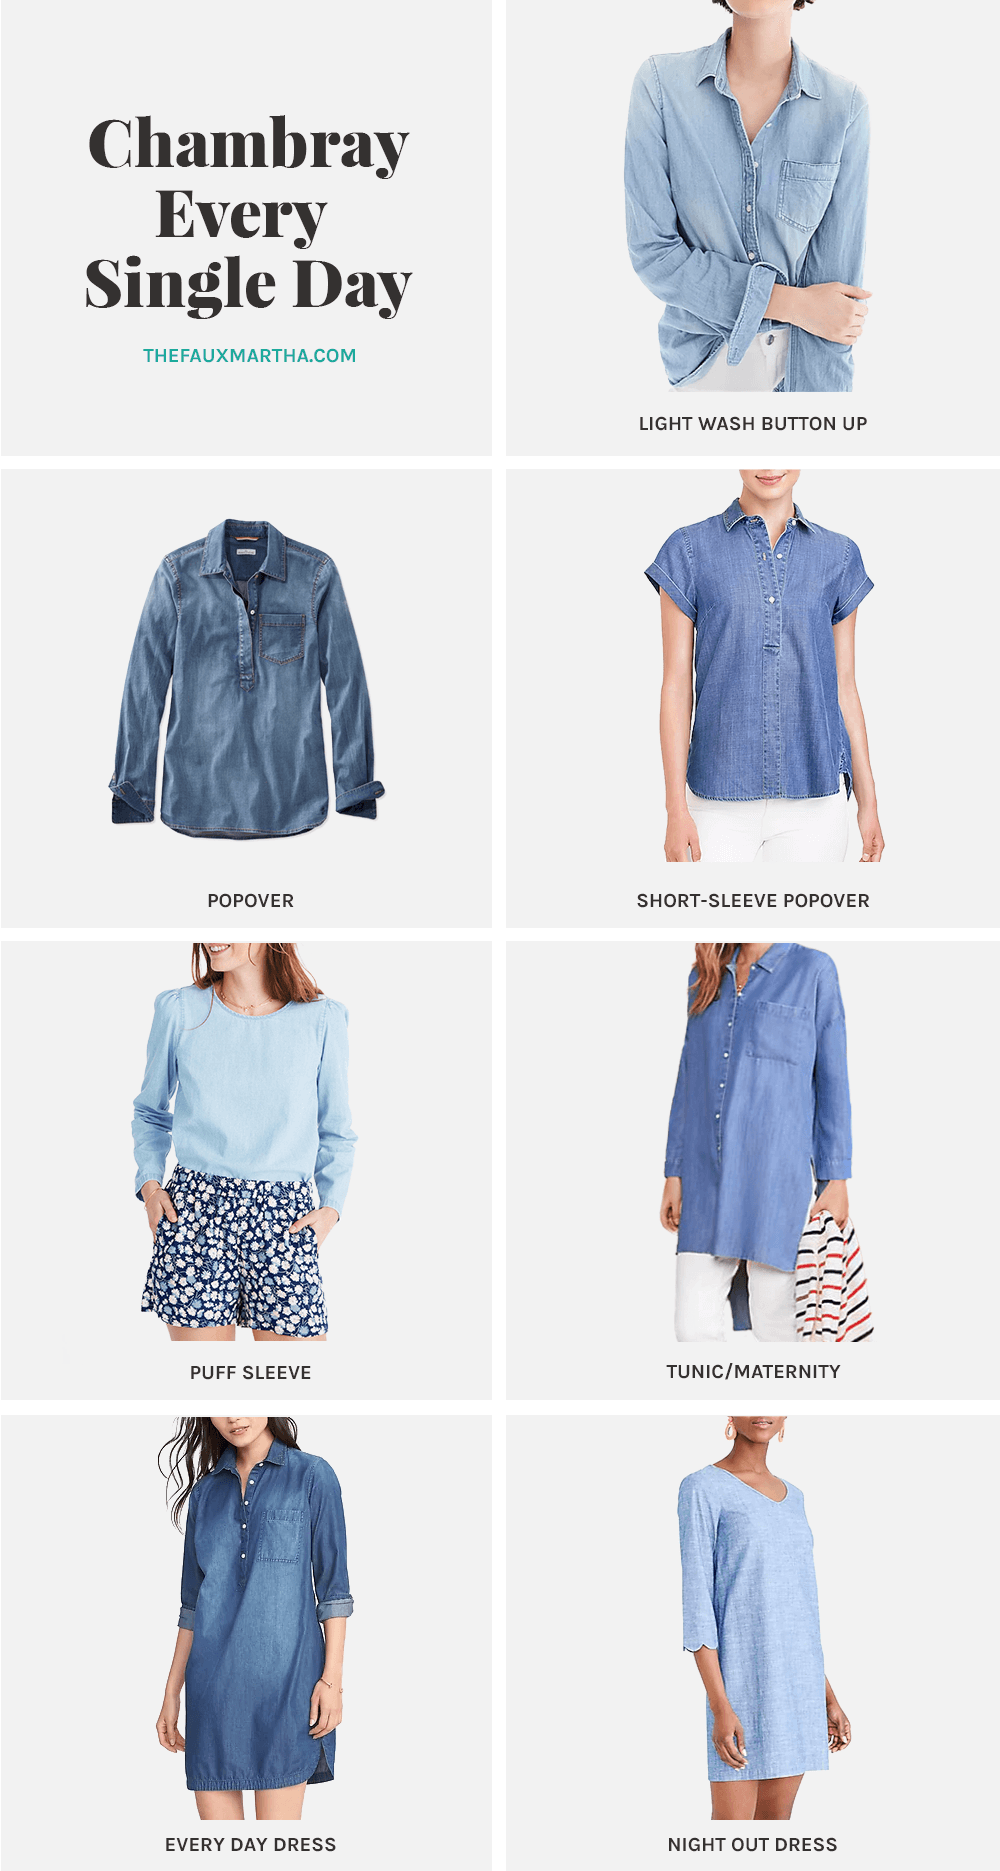 Chambray round up from The faux martha